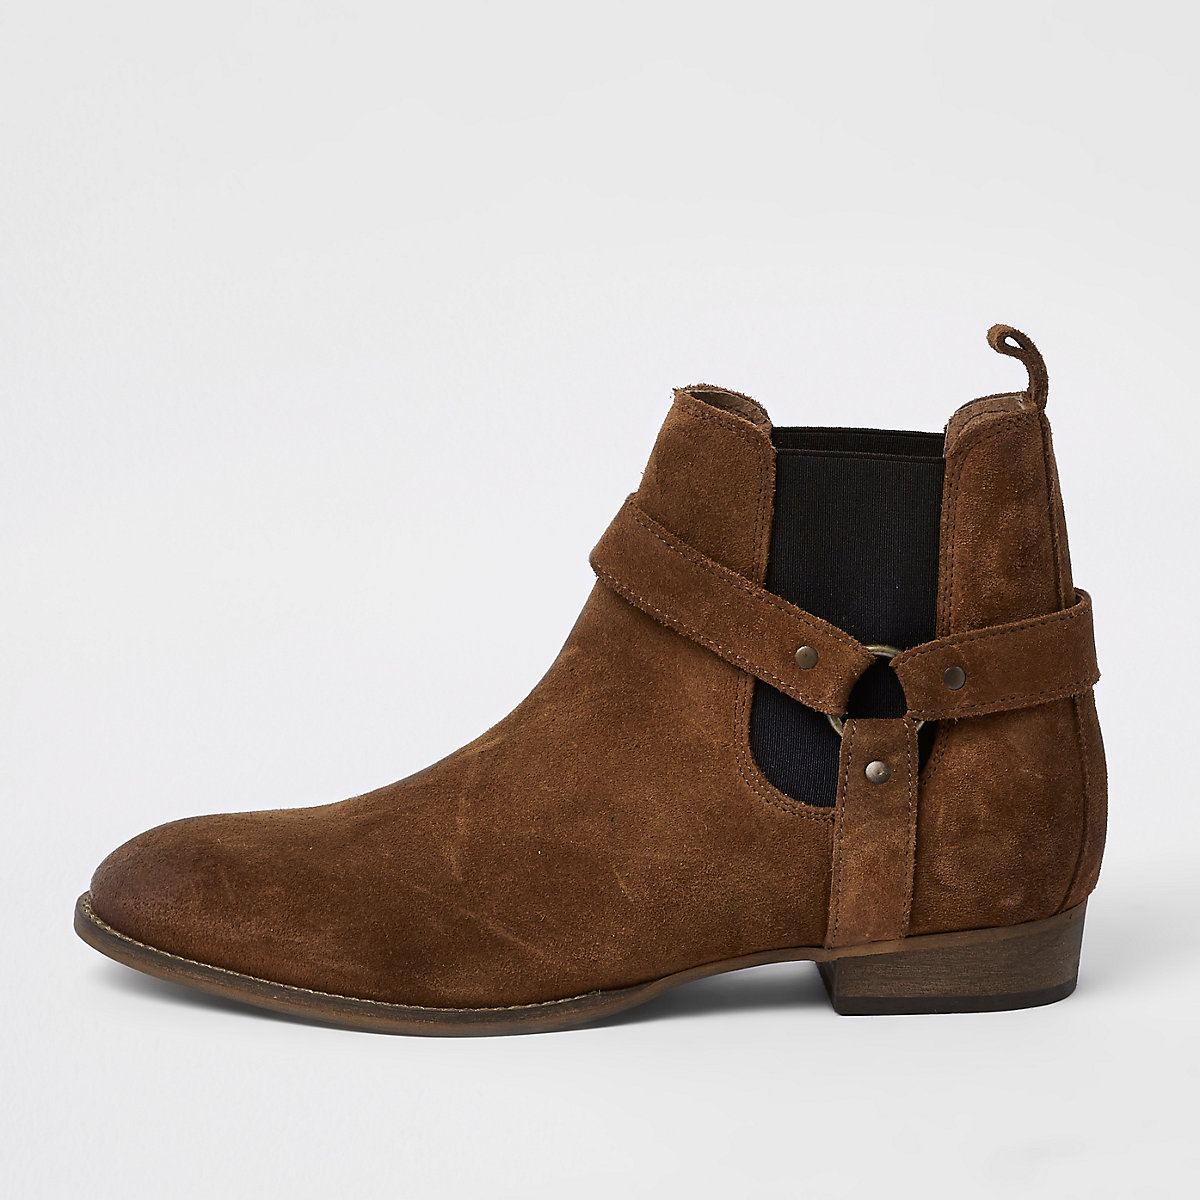 Tan western style suede boots